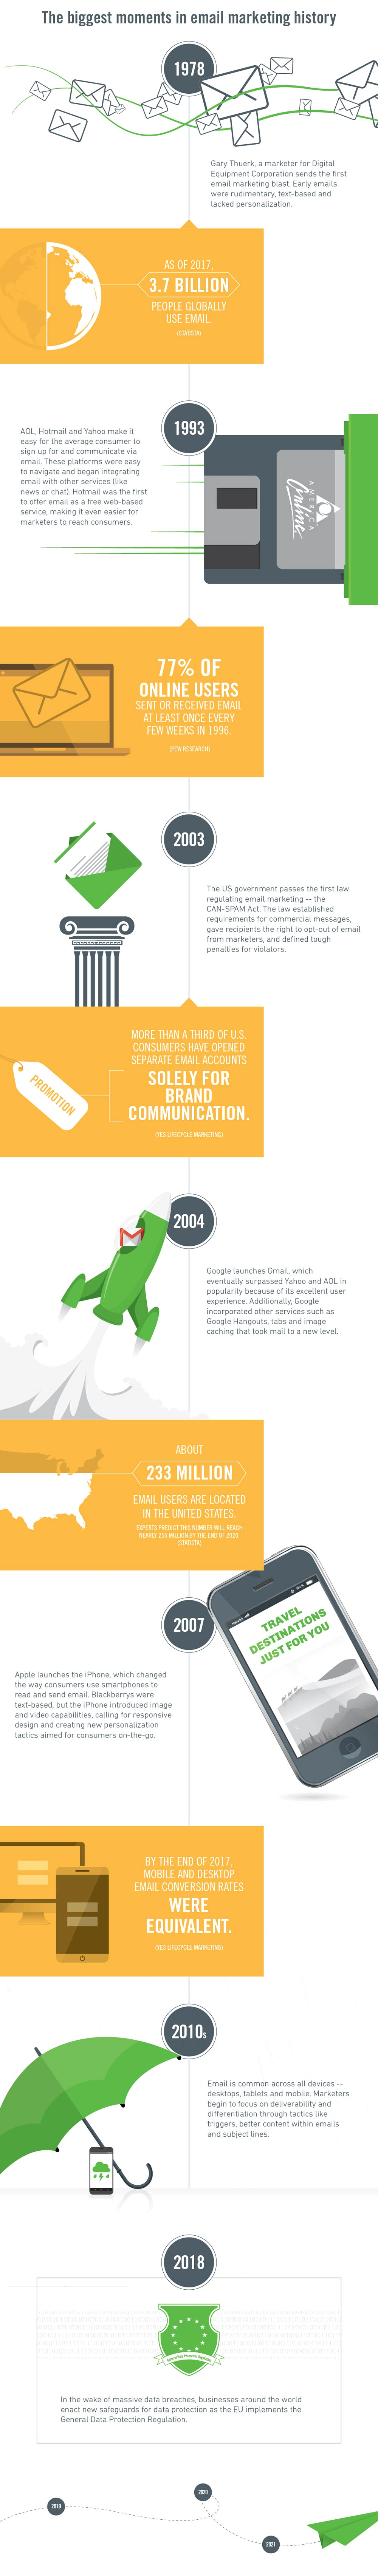 40th email infographic - 40th Anniversary of Email Marketing